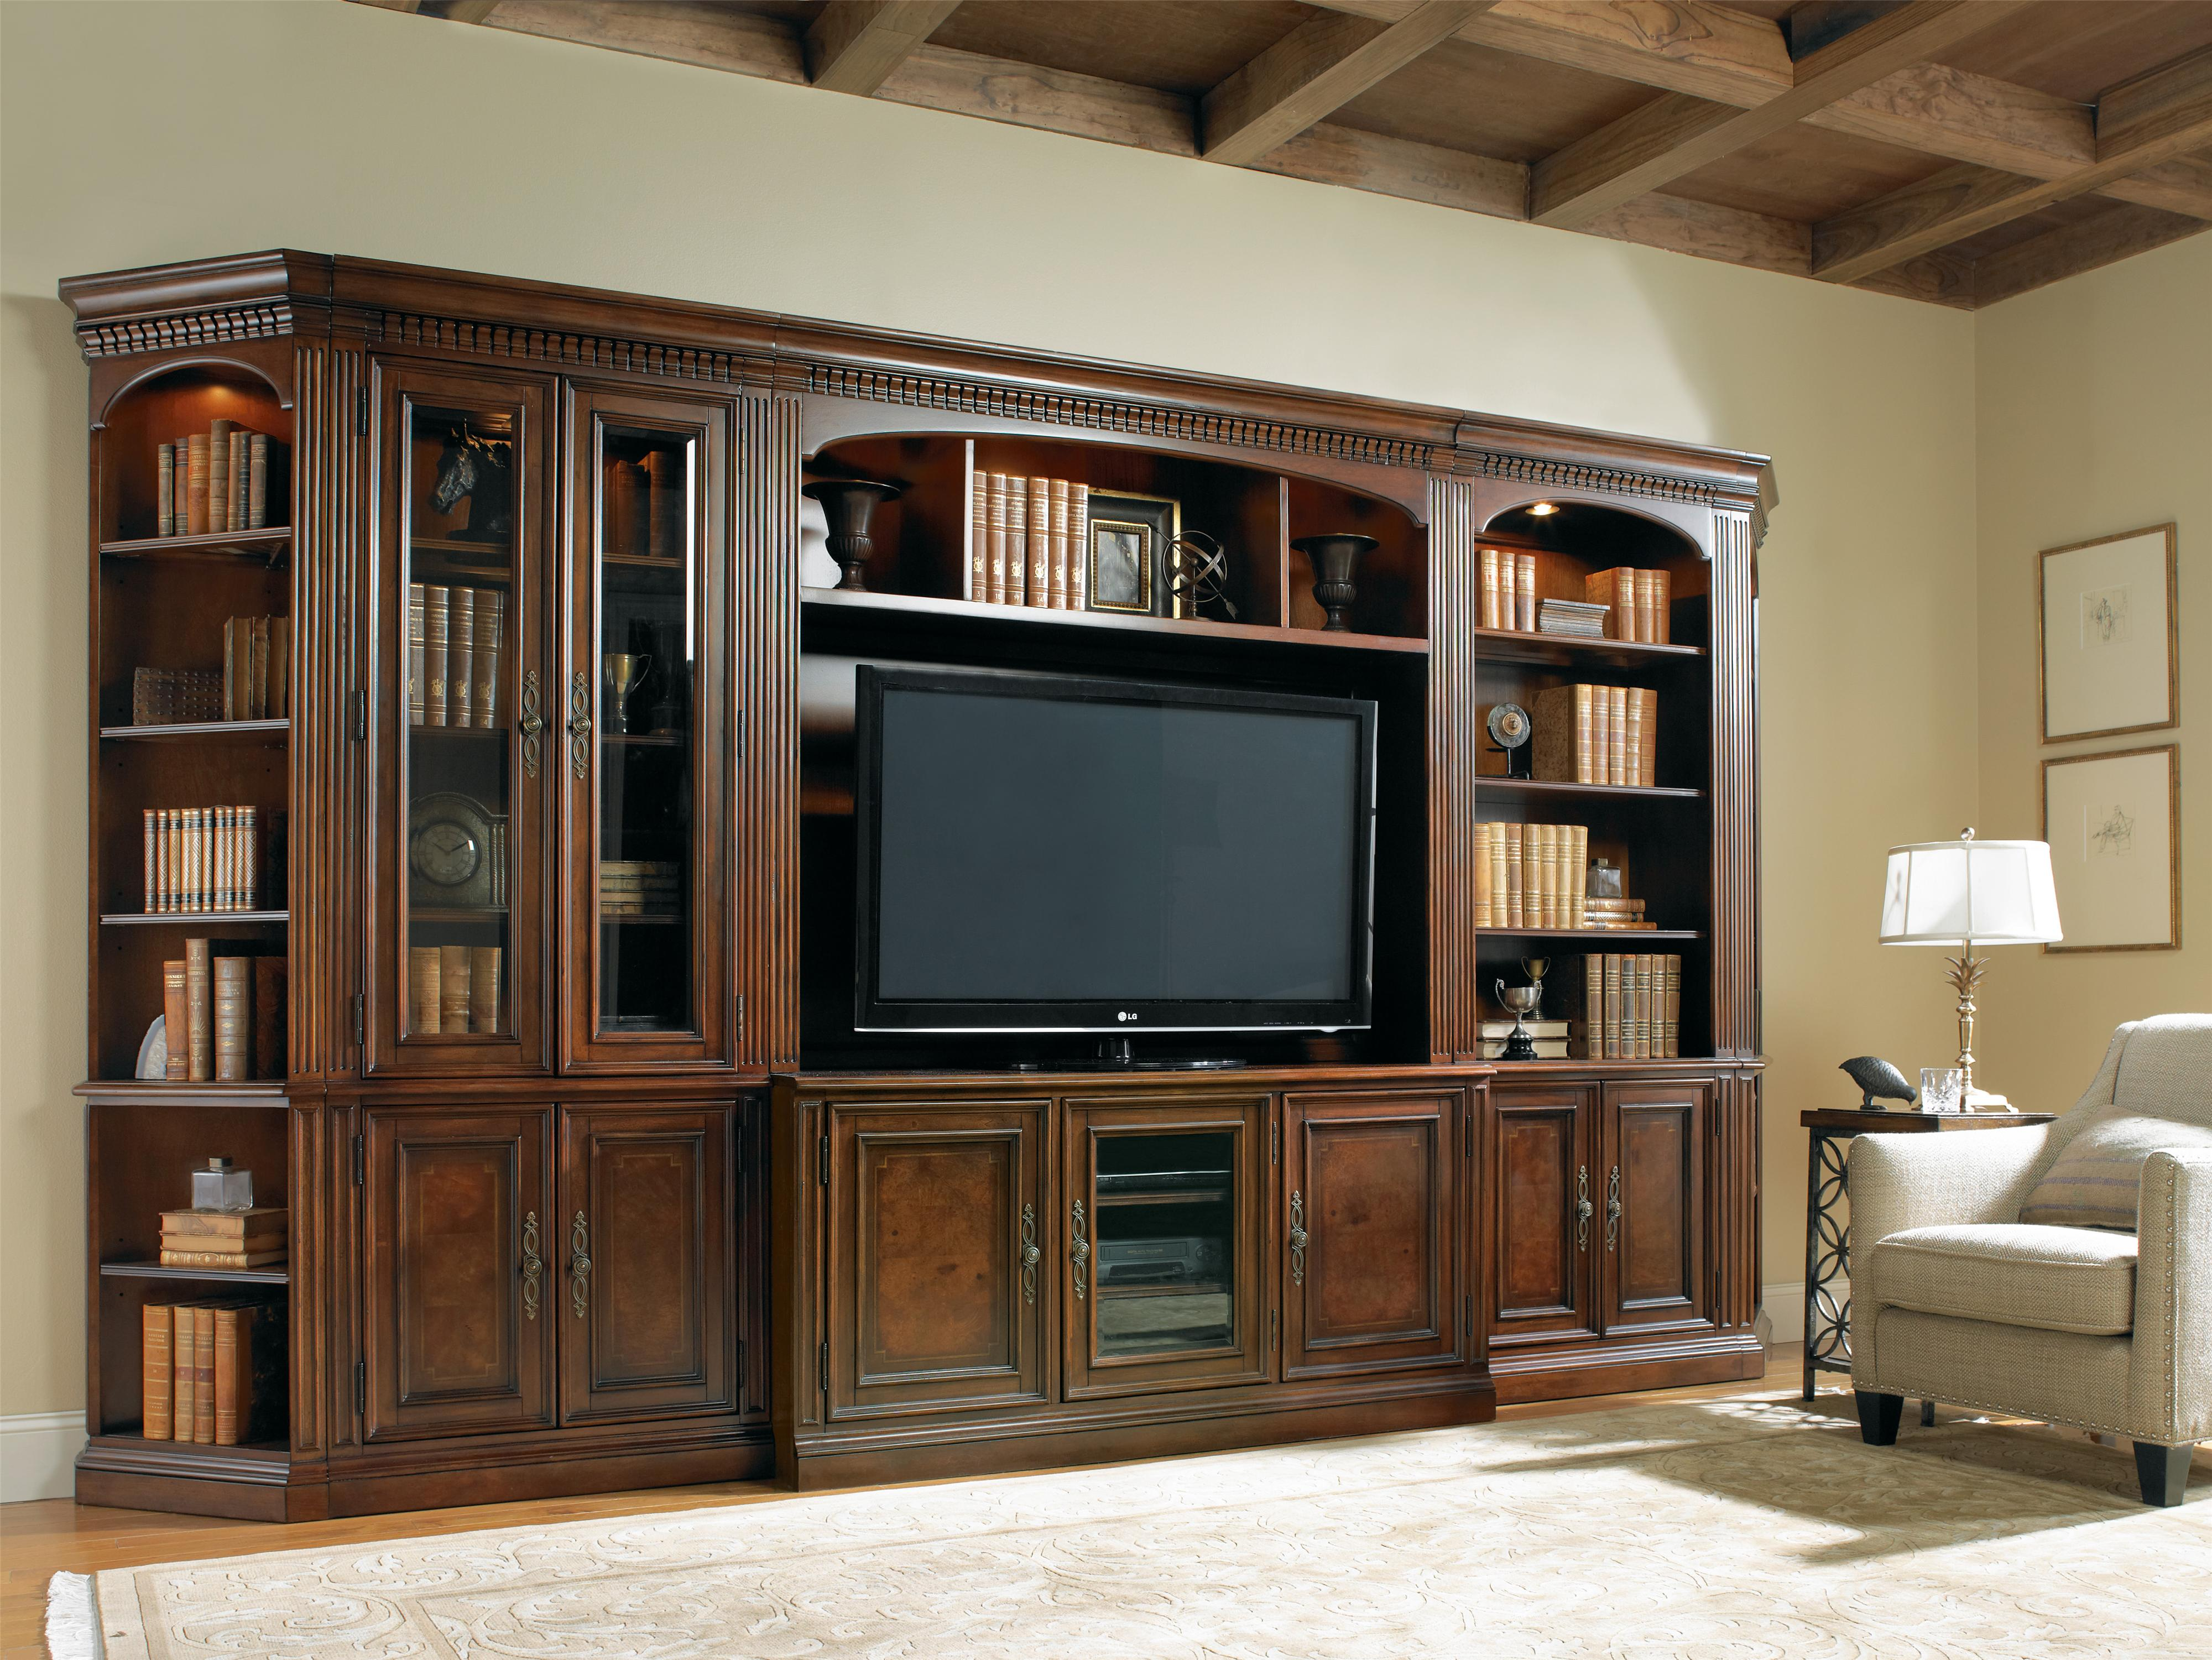 Hooker Furniture European Renaissance II fice Wall Unit with